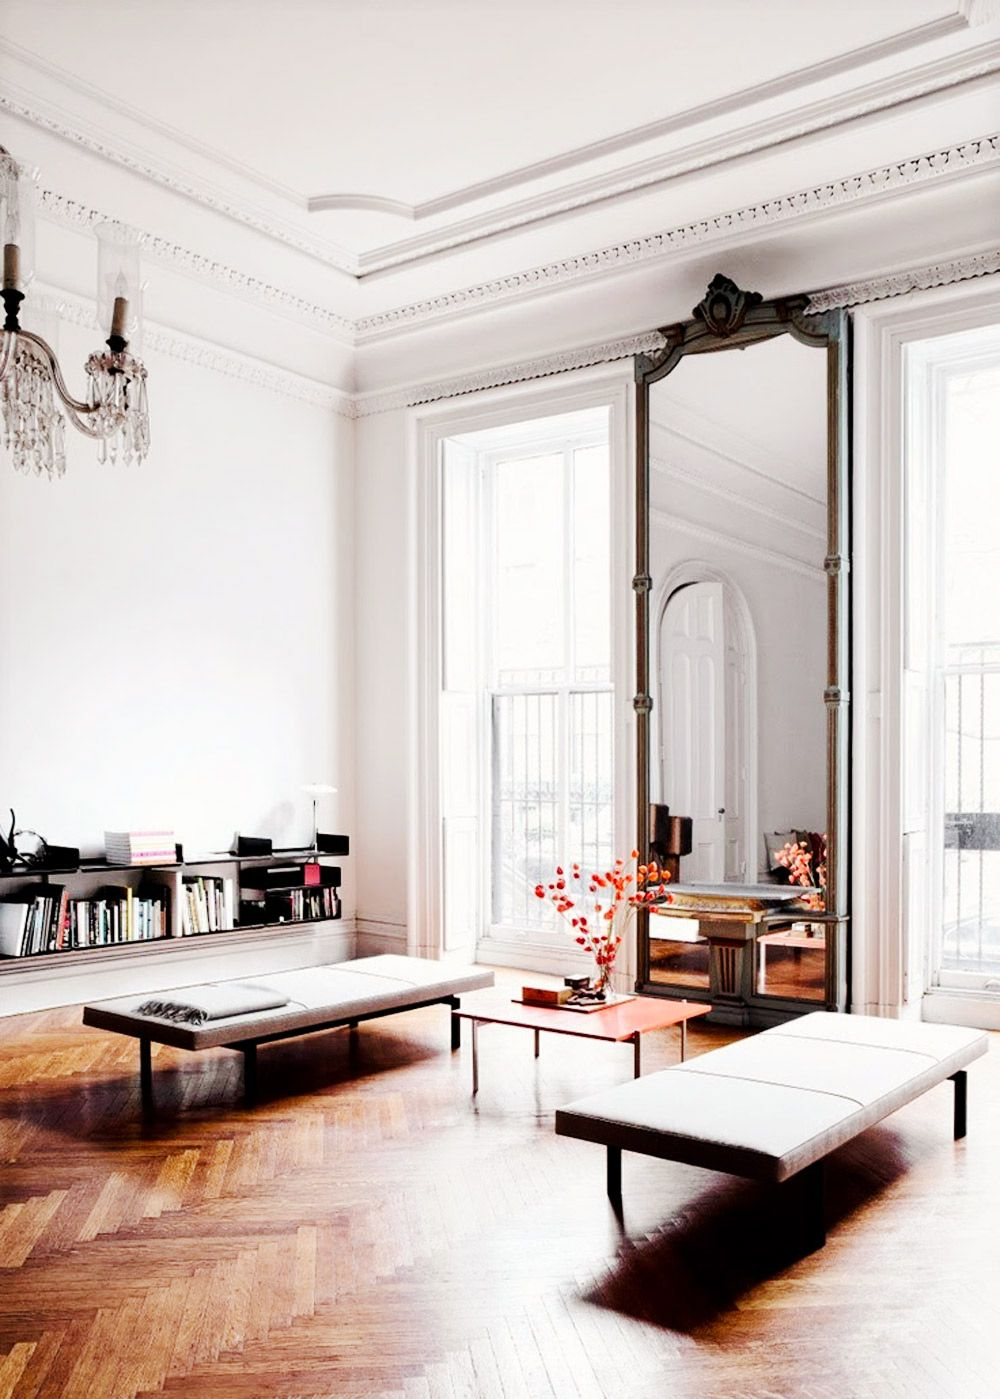 Parisian Bedroom Decorating How To Get The Maison Margiela Look At Home Look At Minimalist